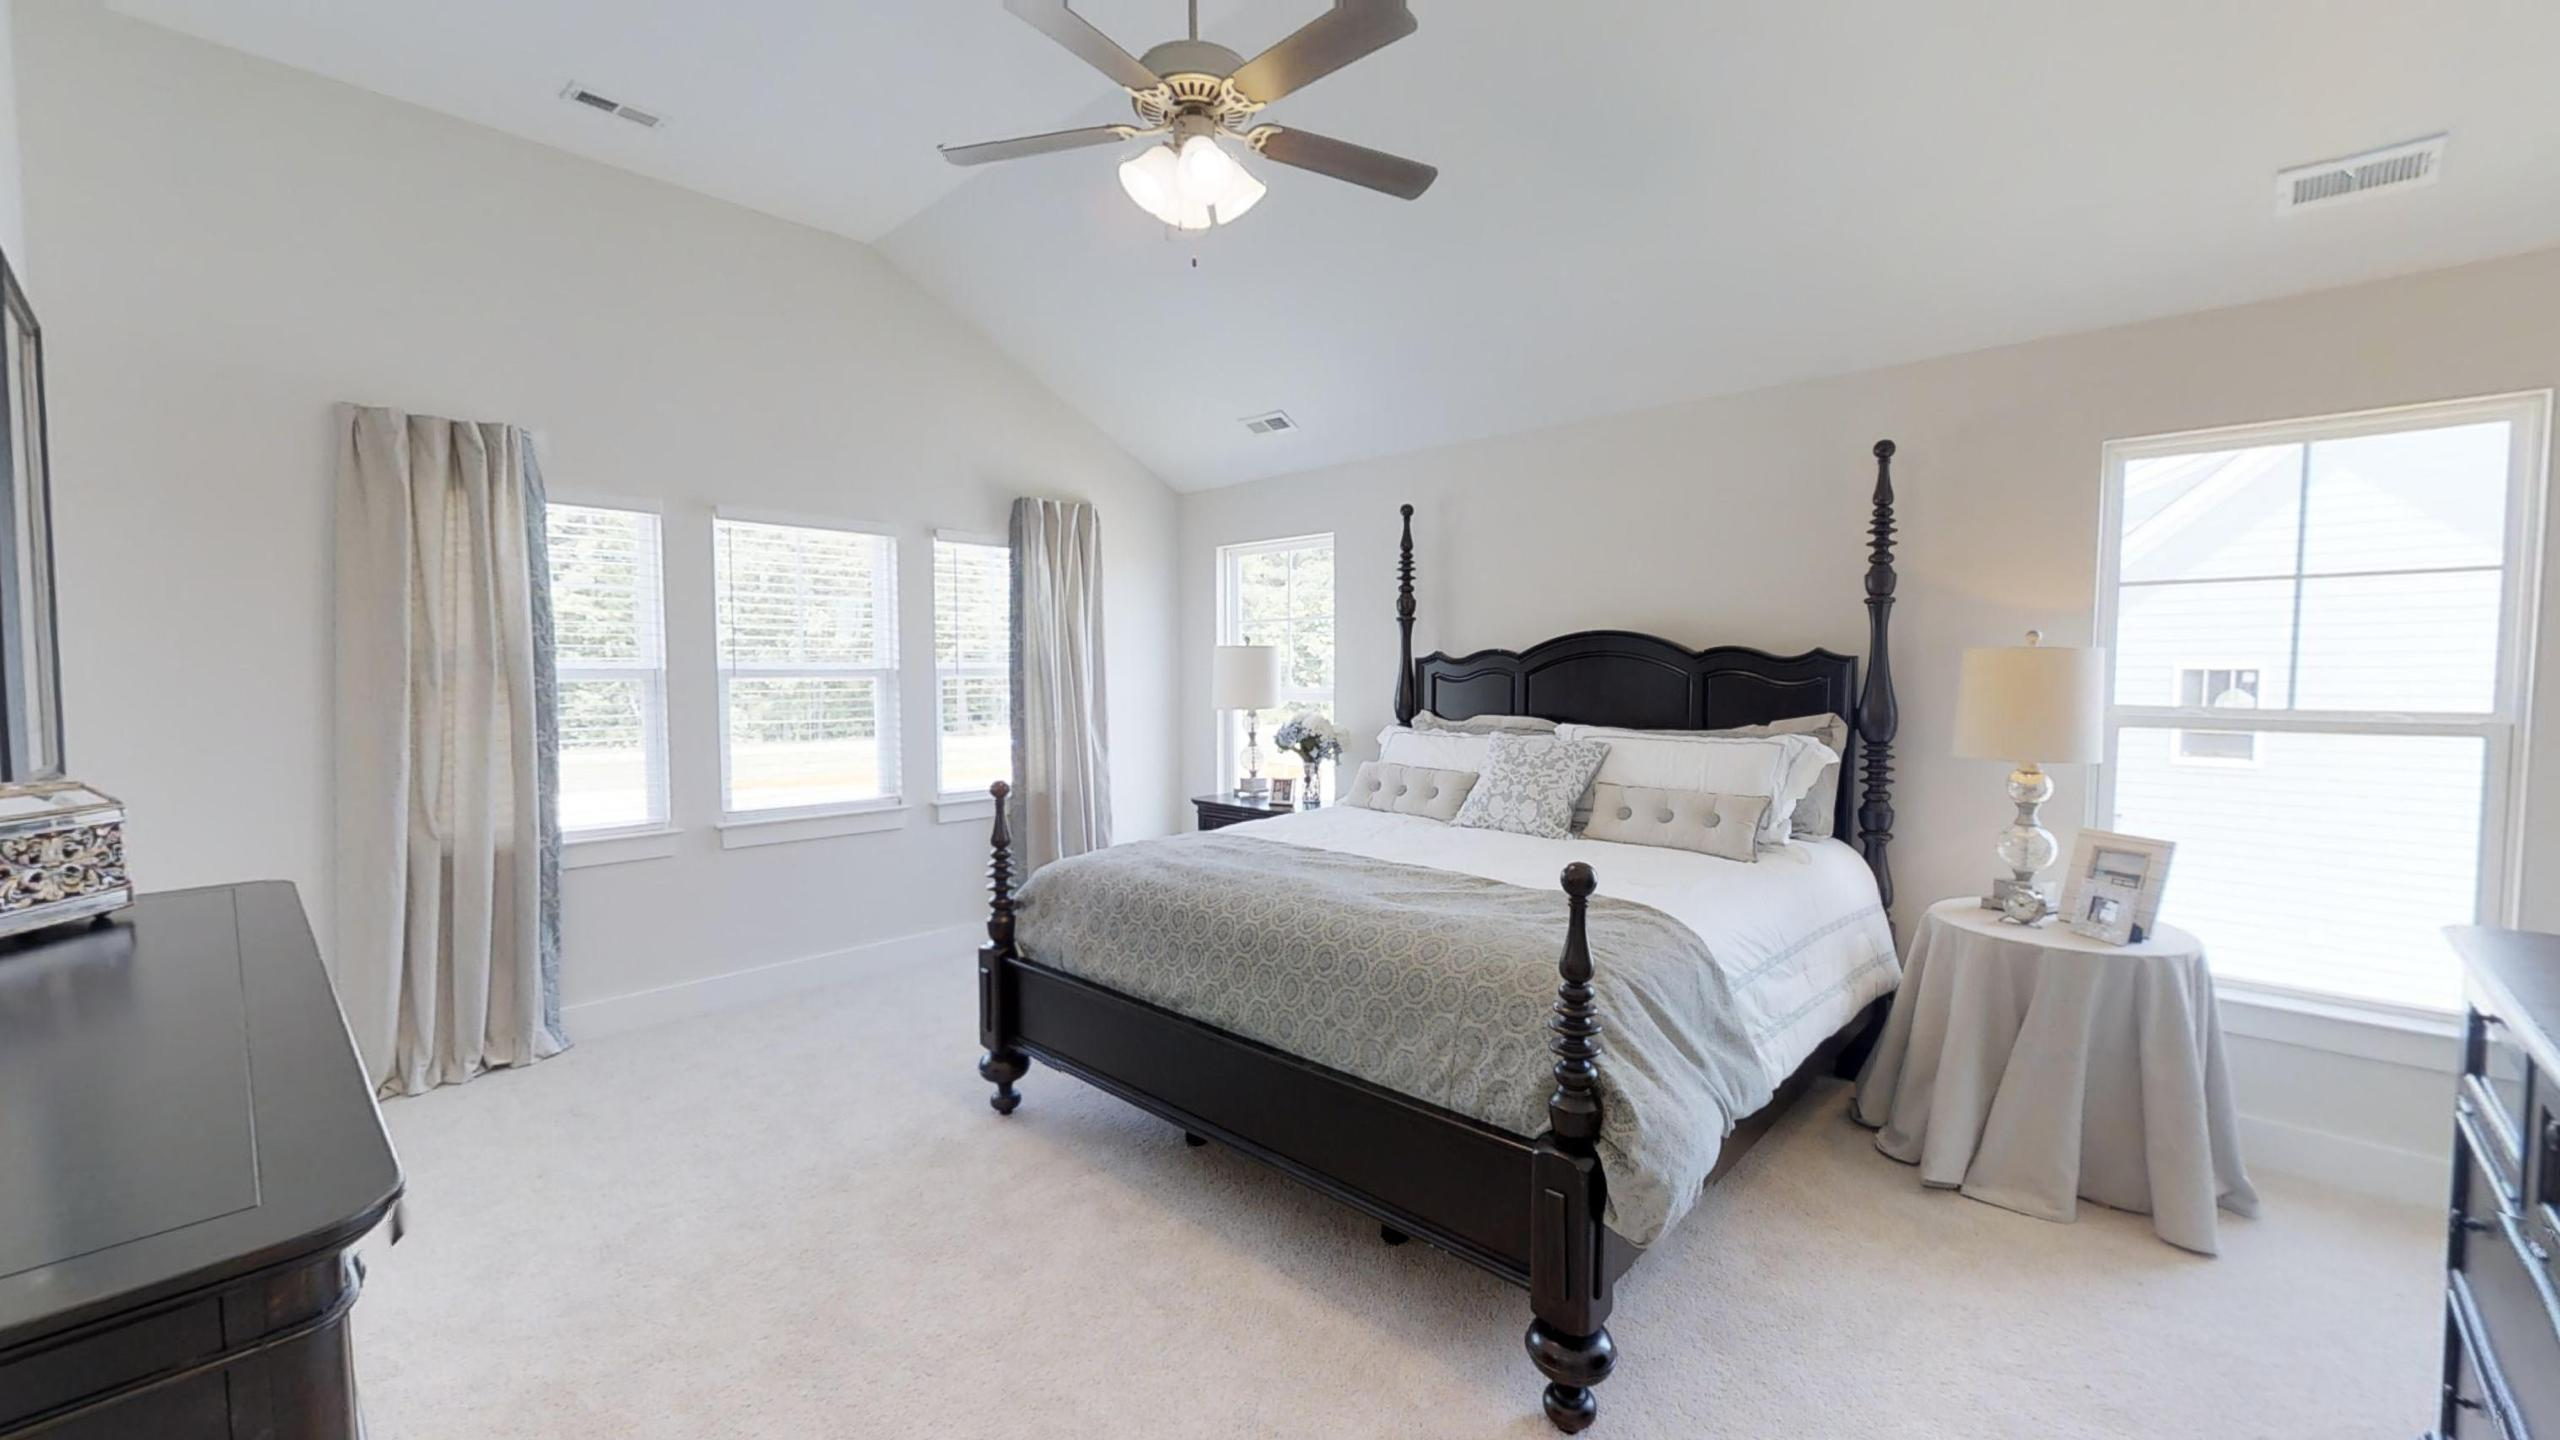 Bedroom featured in the Charlotte By Stephen Alexander Homes in Outer Banks, NC